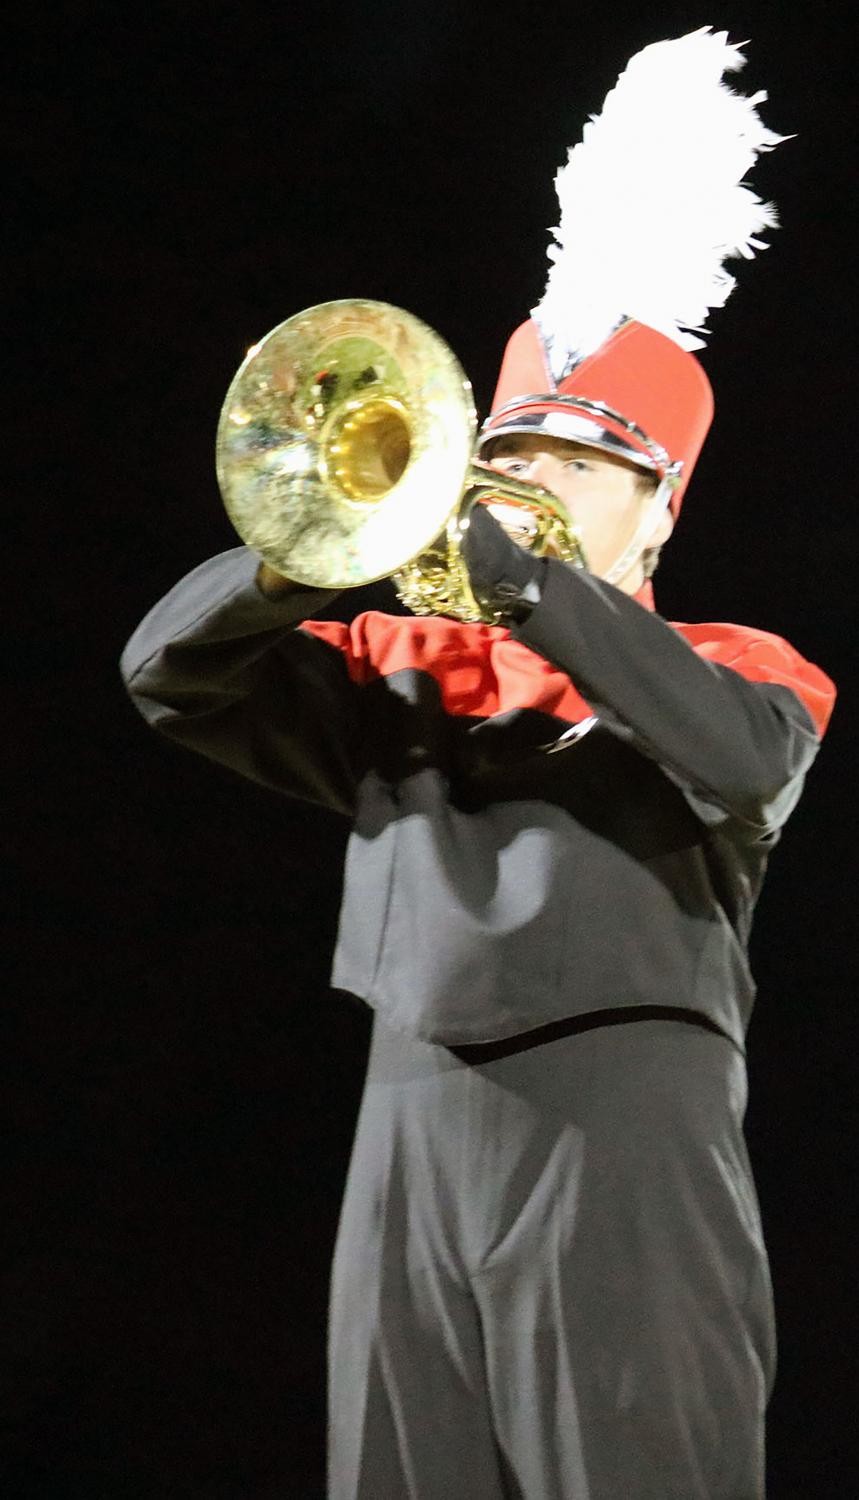 Senior marching band member, Adam Richling (18), climbs the stage and plays a mellophone solo during the song